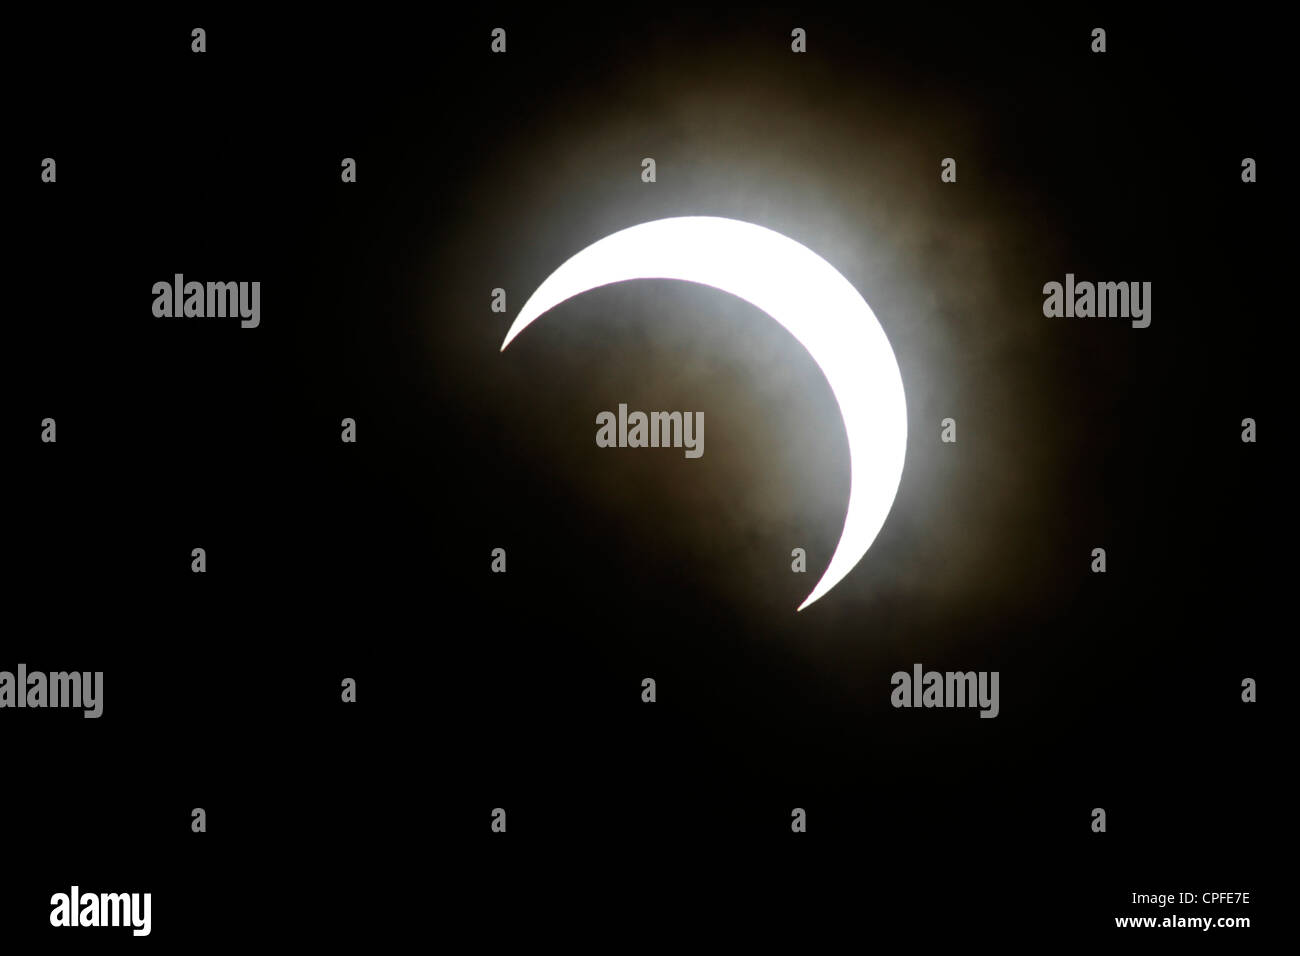 Annular Solar Eclipse of 2012 May 21 seen in Tokyo Japan - Stock Image